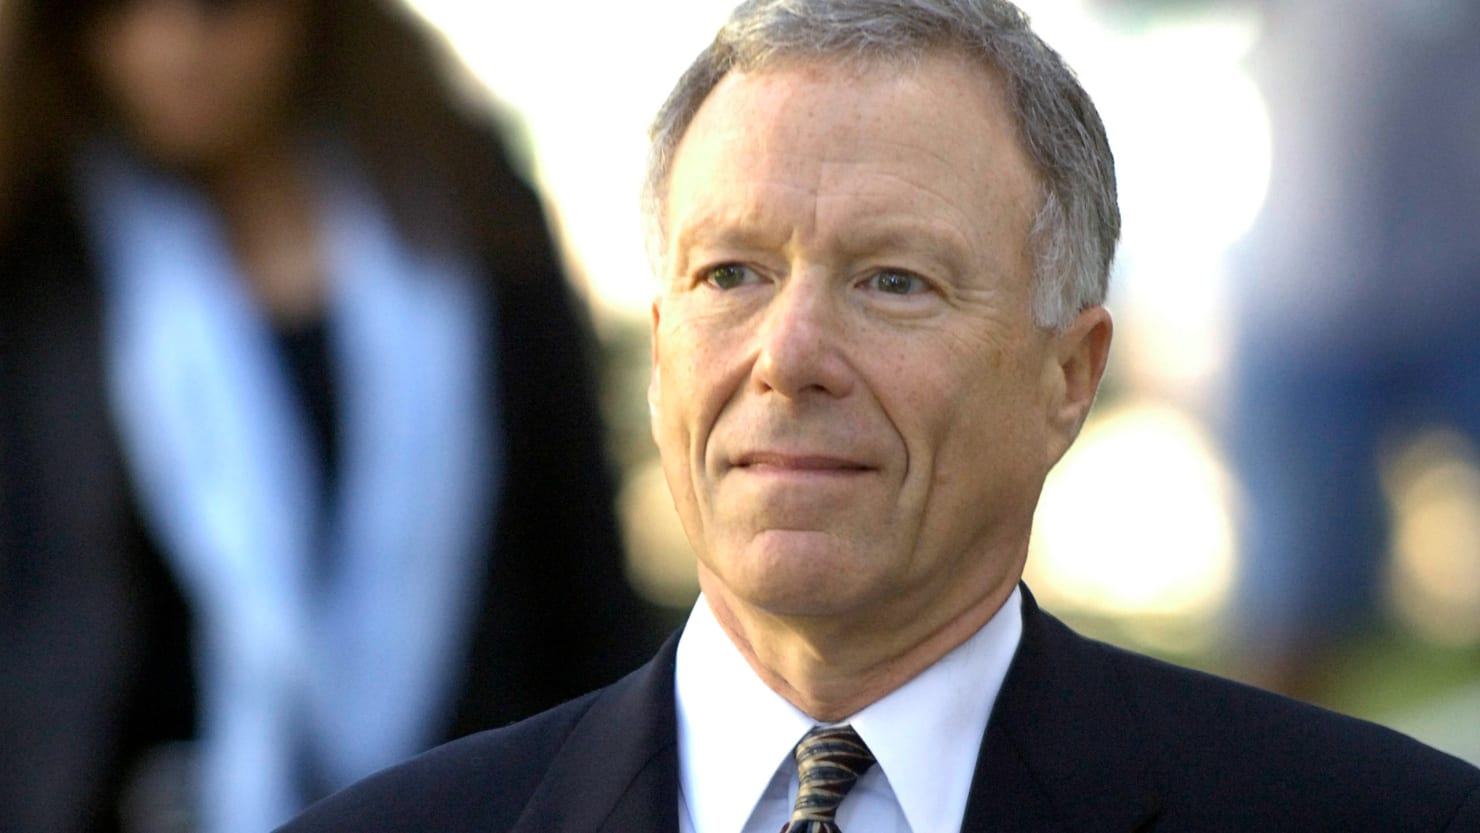 Scooter Libby to be pardoned